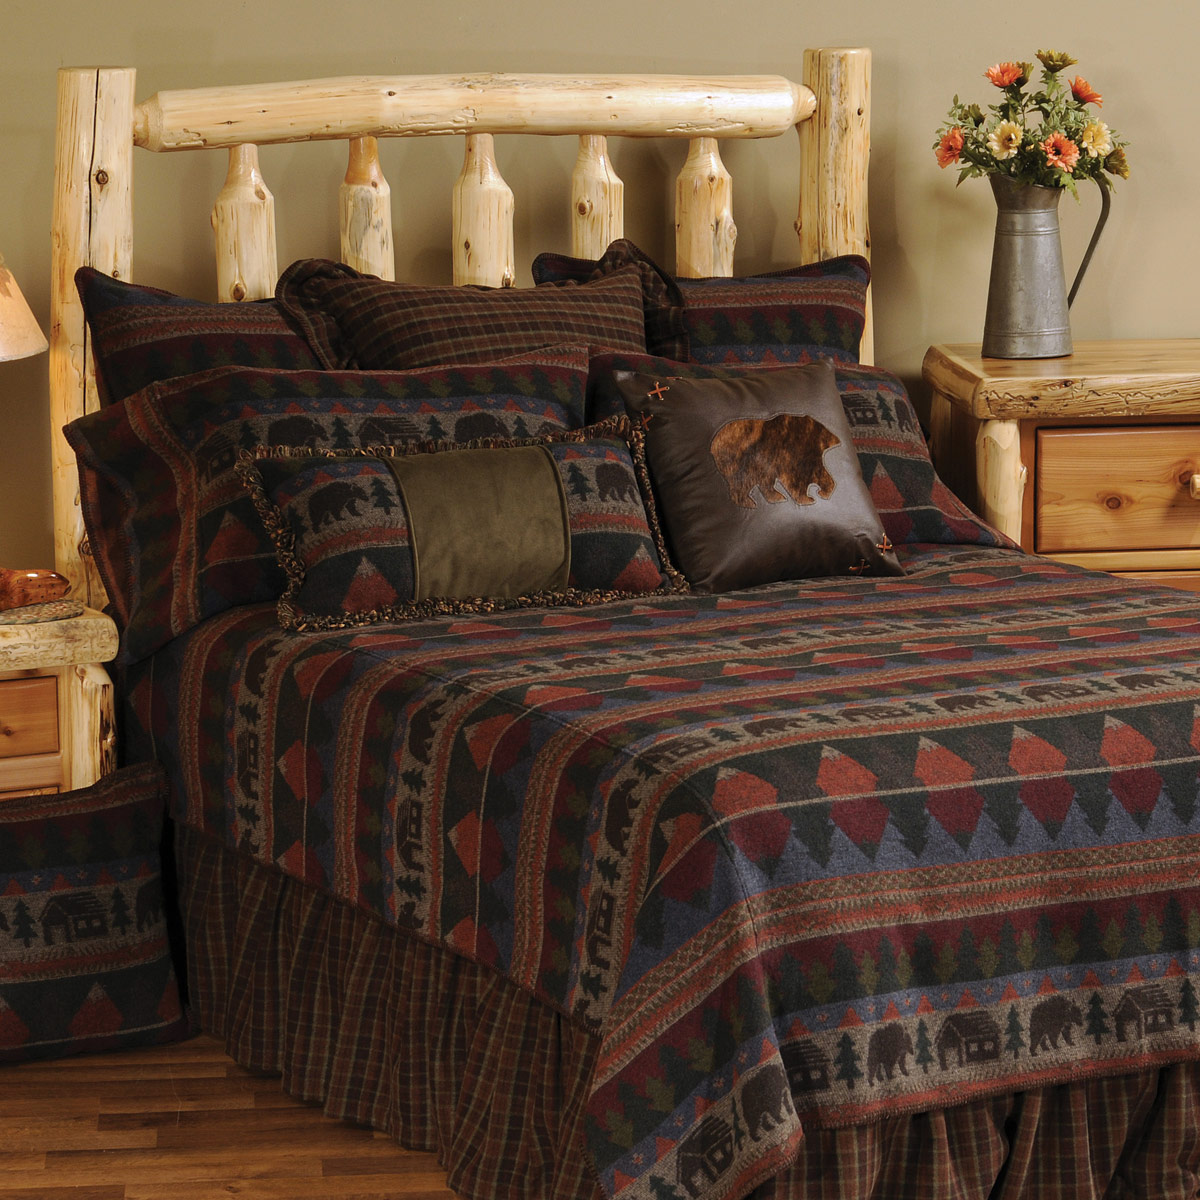 Black Forest Decor Cabin bear bedspread - super king